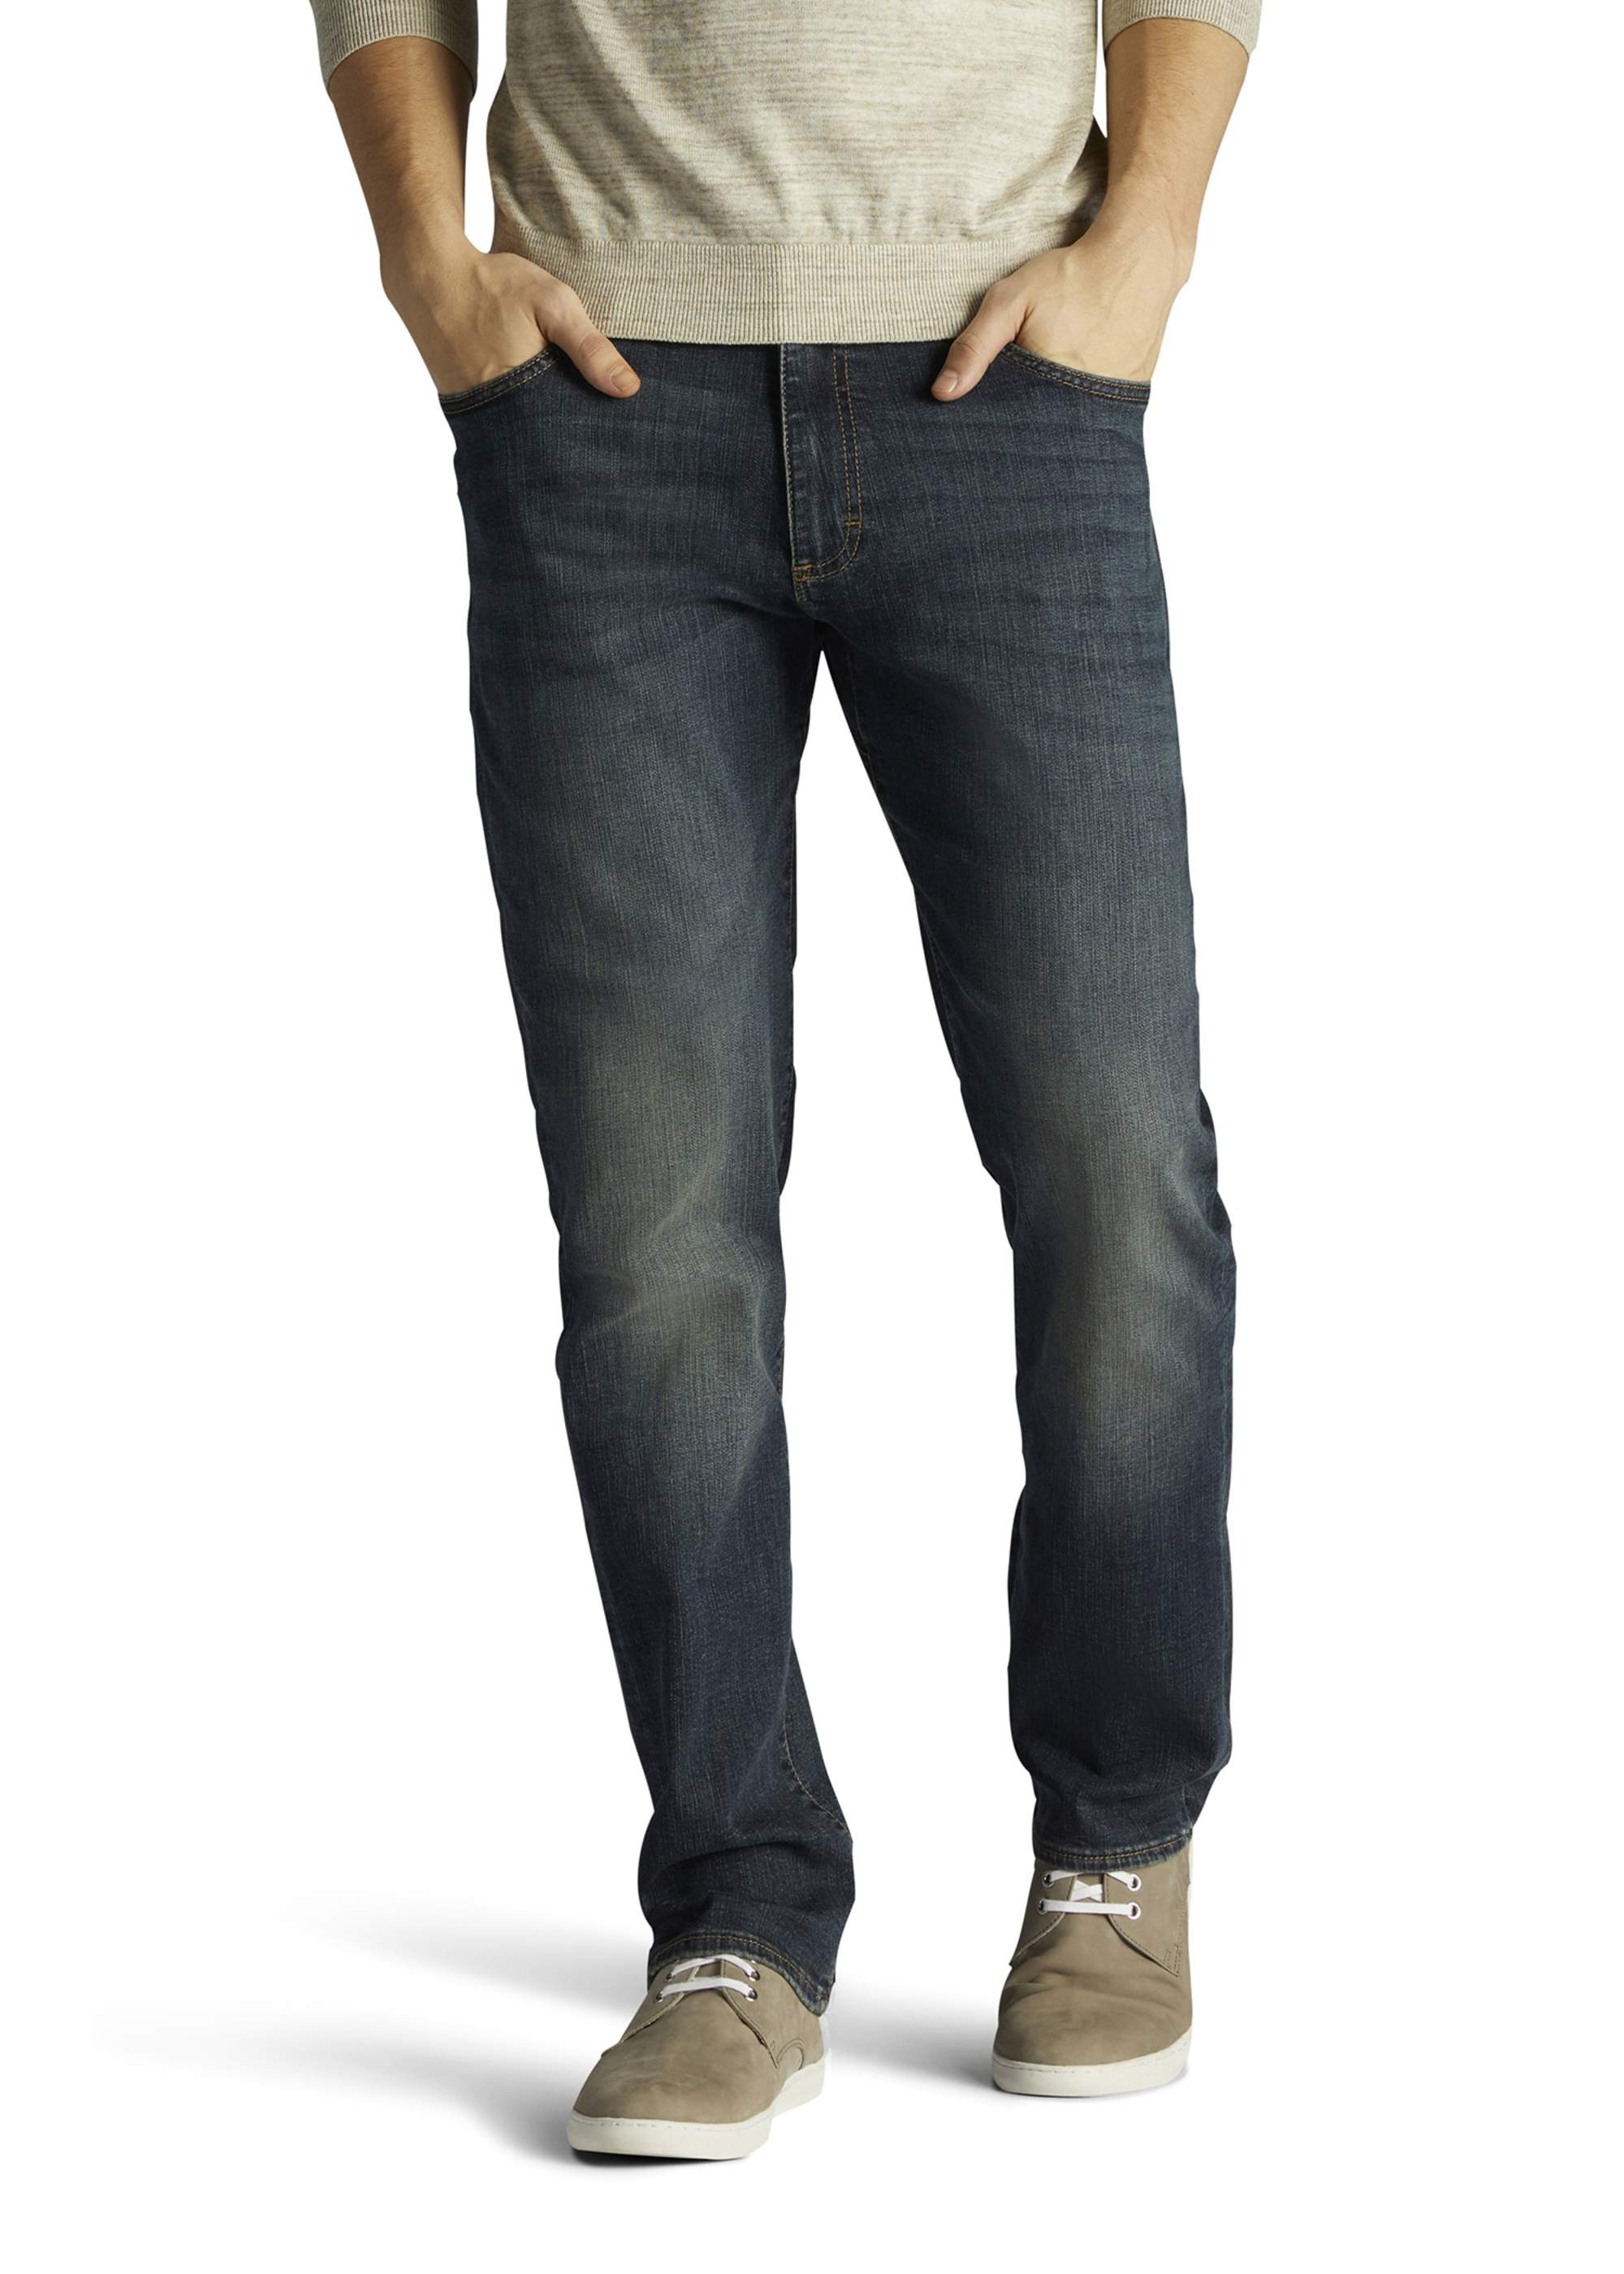 LEE Extreme Motion New Mens Super Stretchy Denim Jeans Tapered Straight Trip